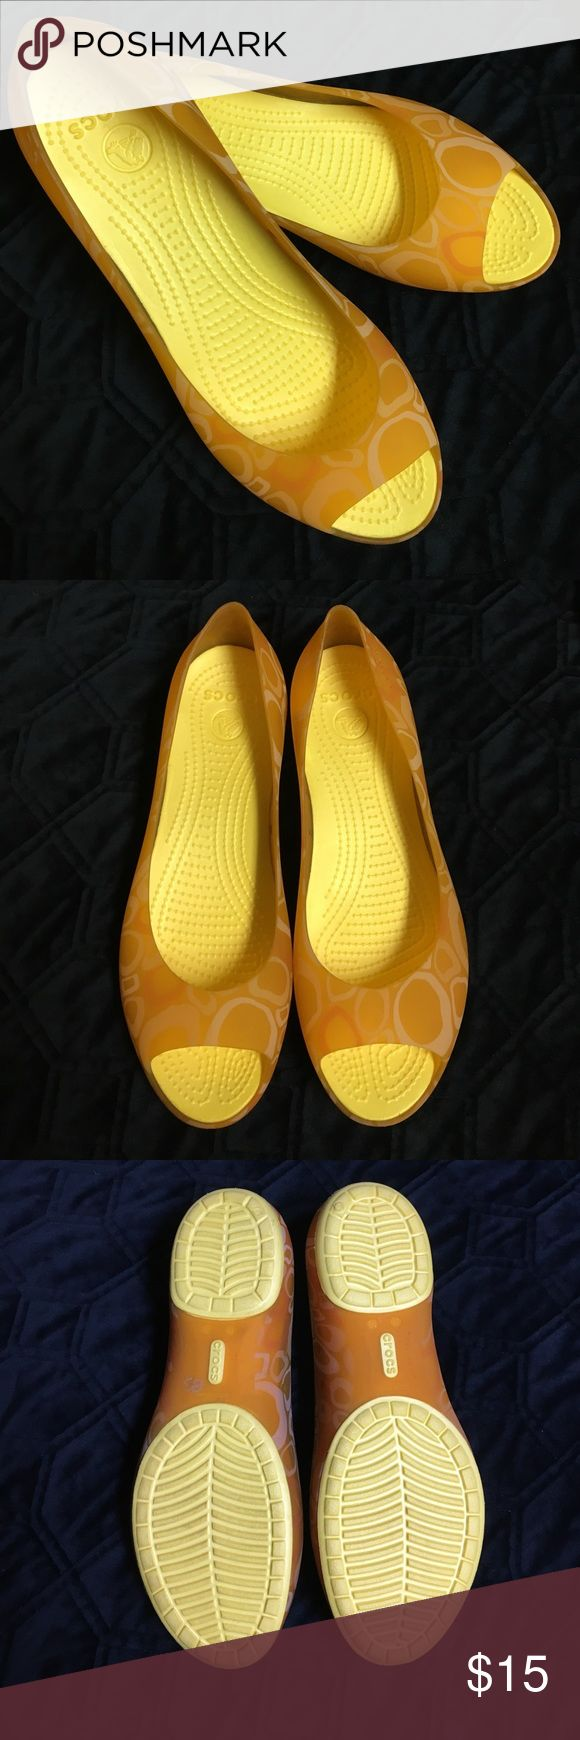 Crocs peep toe shoes Here's a great pair of crocs peep toe shoes. These bright and fun and are in very good condition. CROCS Shoes